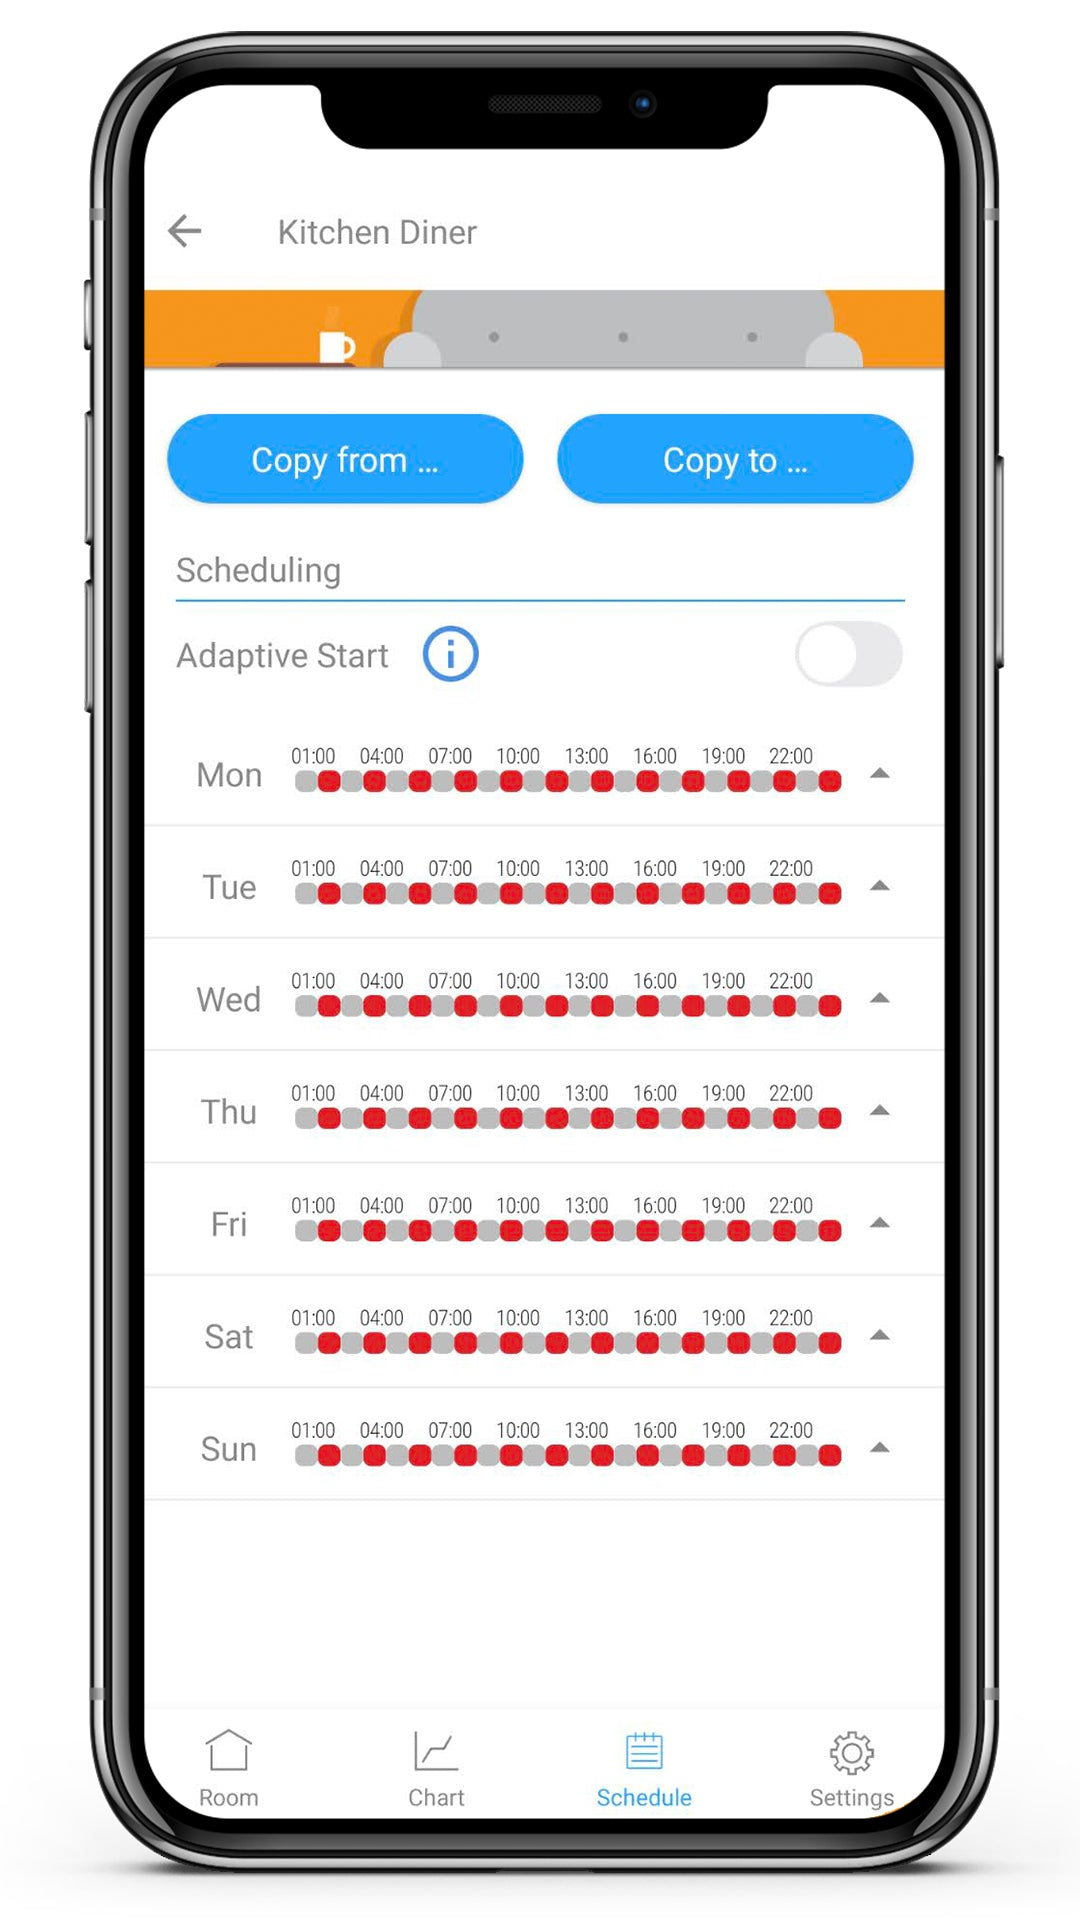 7 day schedules for every room!